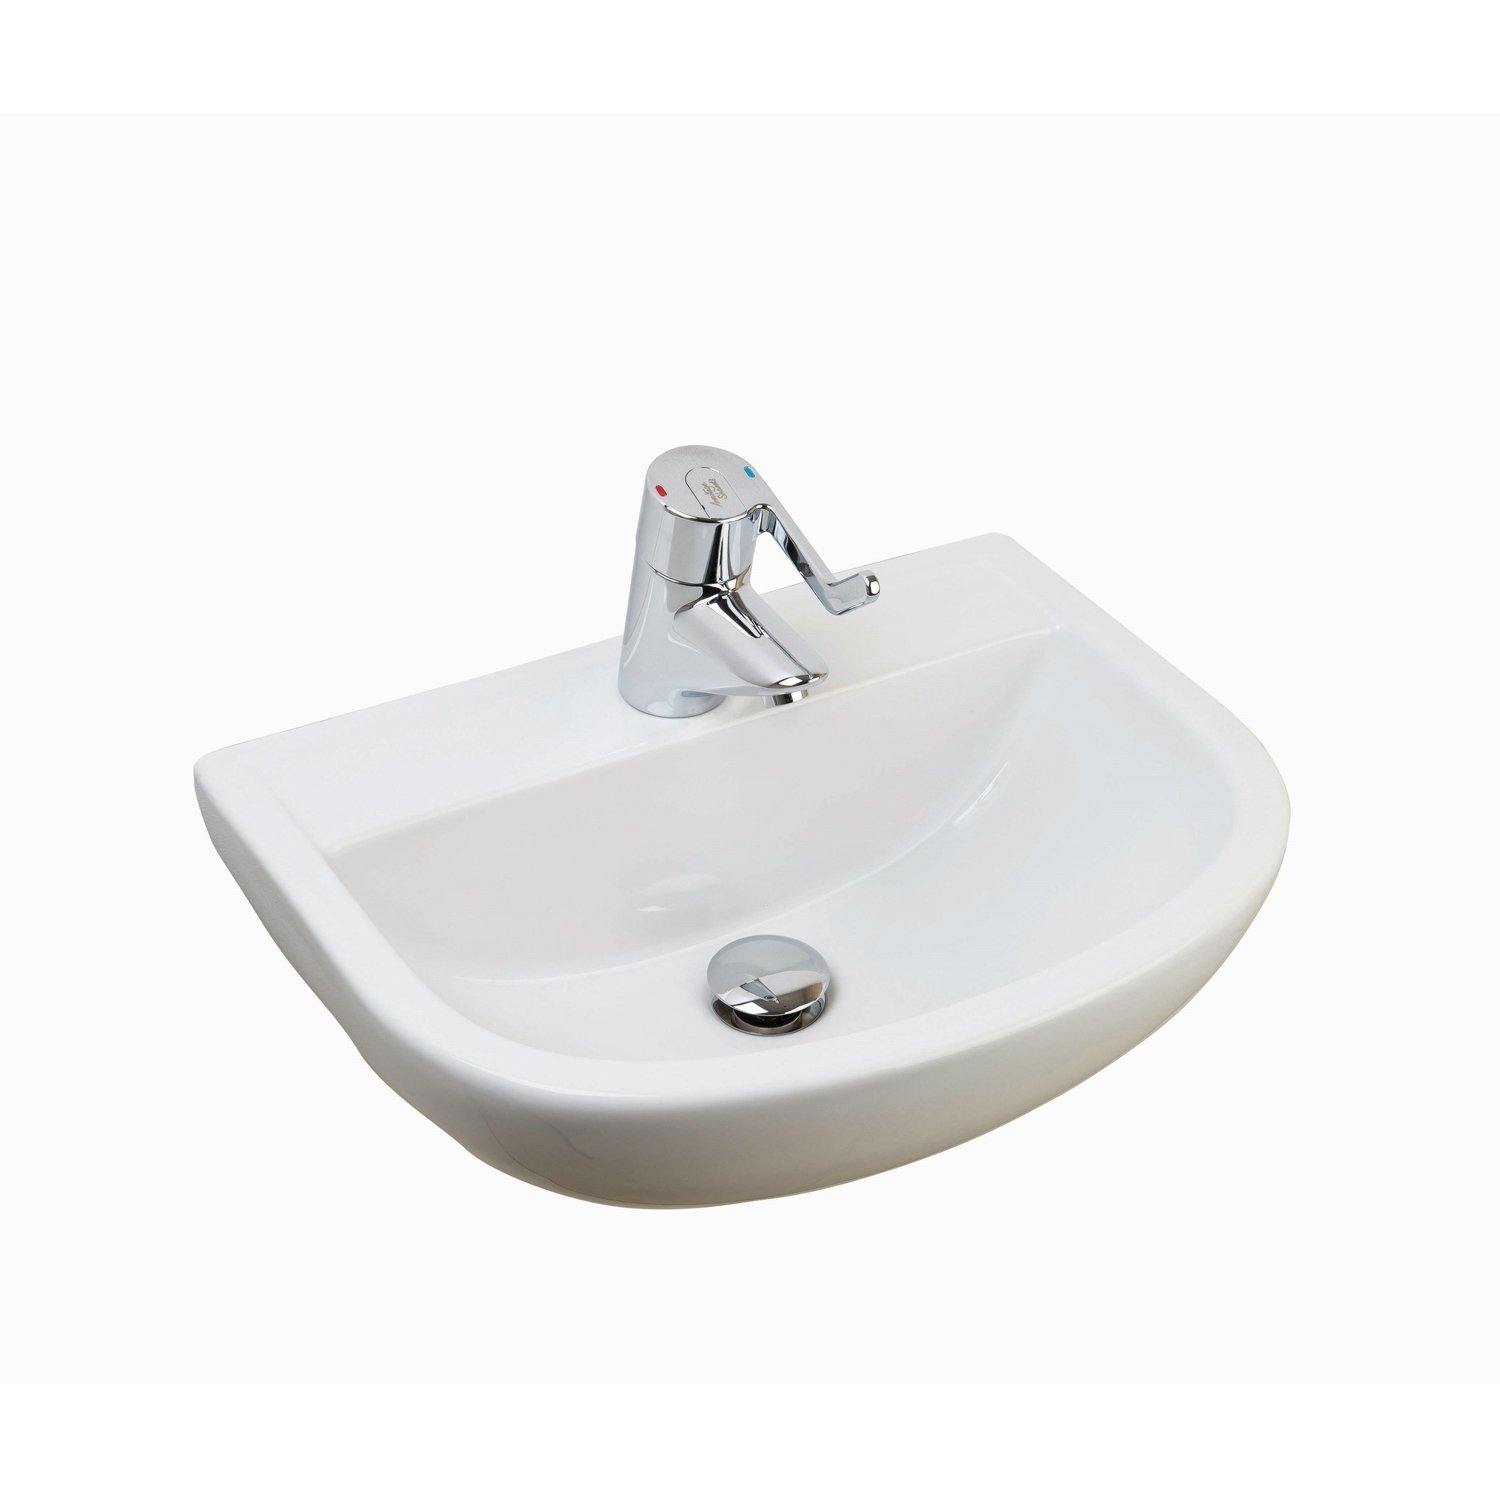 RAK Compact Special Needs Cloakroom Basin 500mm Wide 0 Tap Hole-0